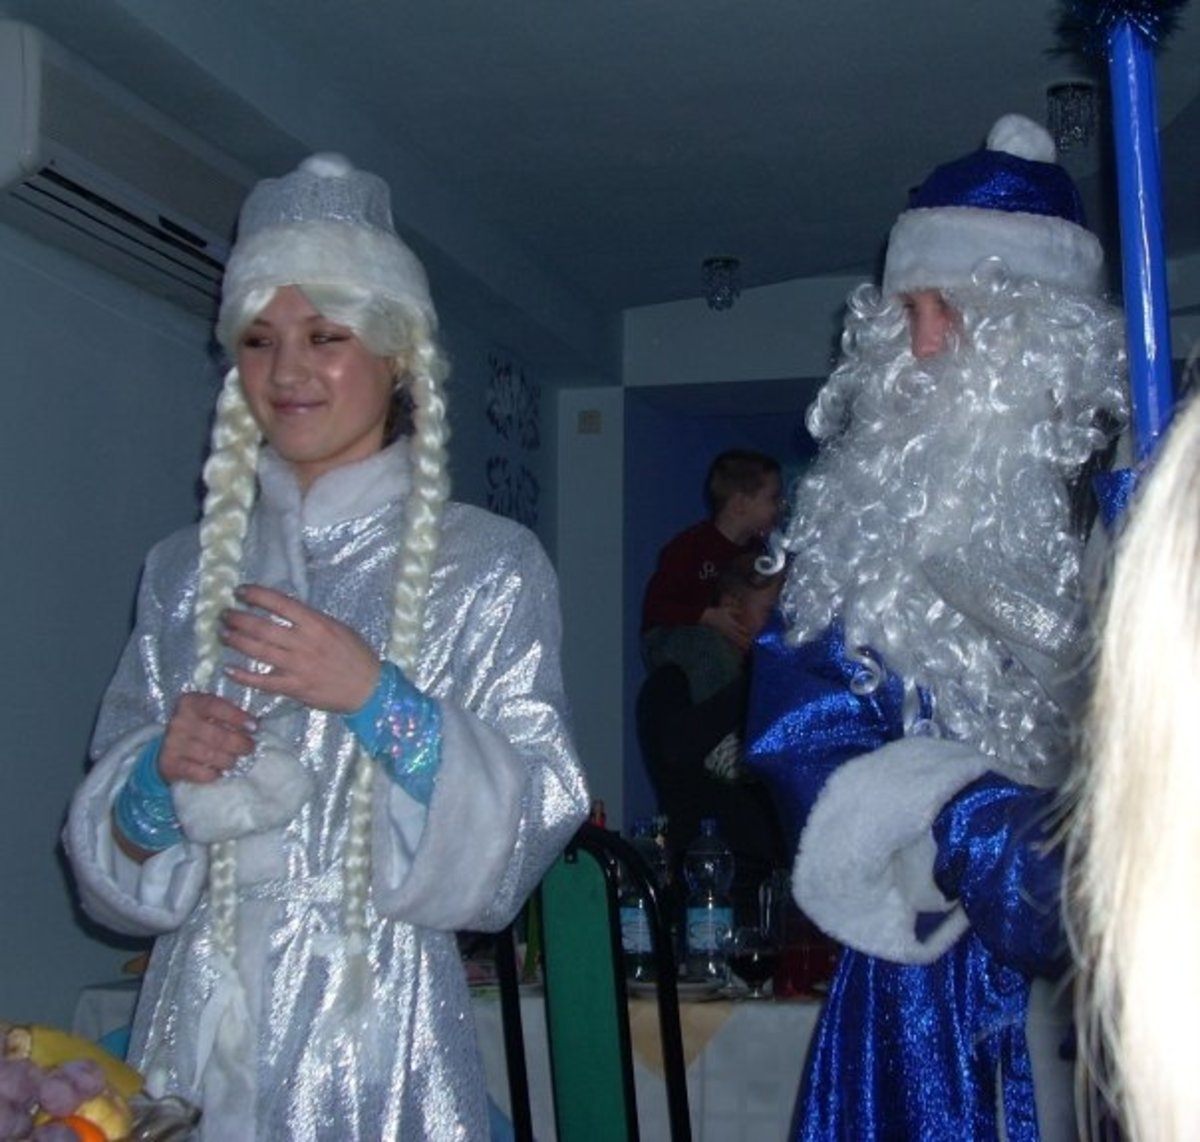 Father Frost and Snow Maiden at Volzhanka, Cheboksary, Russia